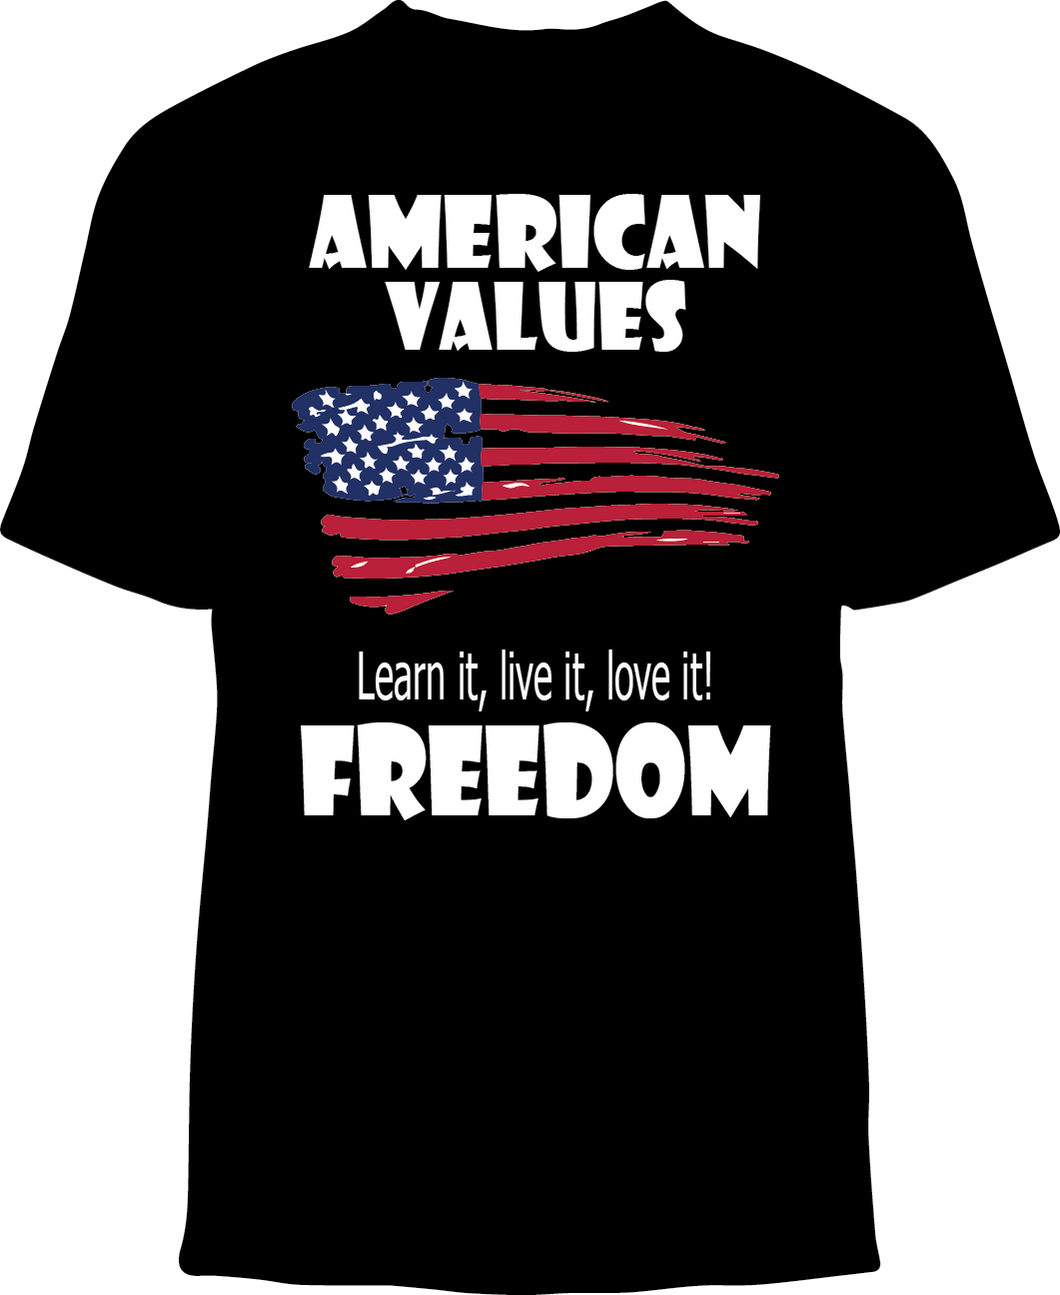 Skelebone Short Sleeve T-shirt, American Values Front